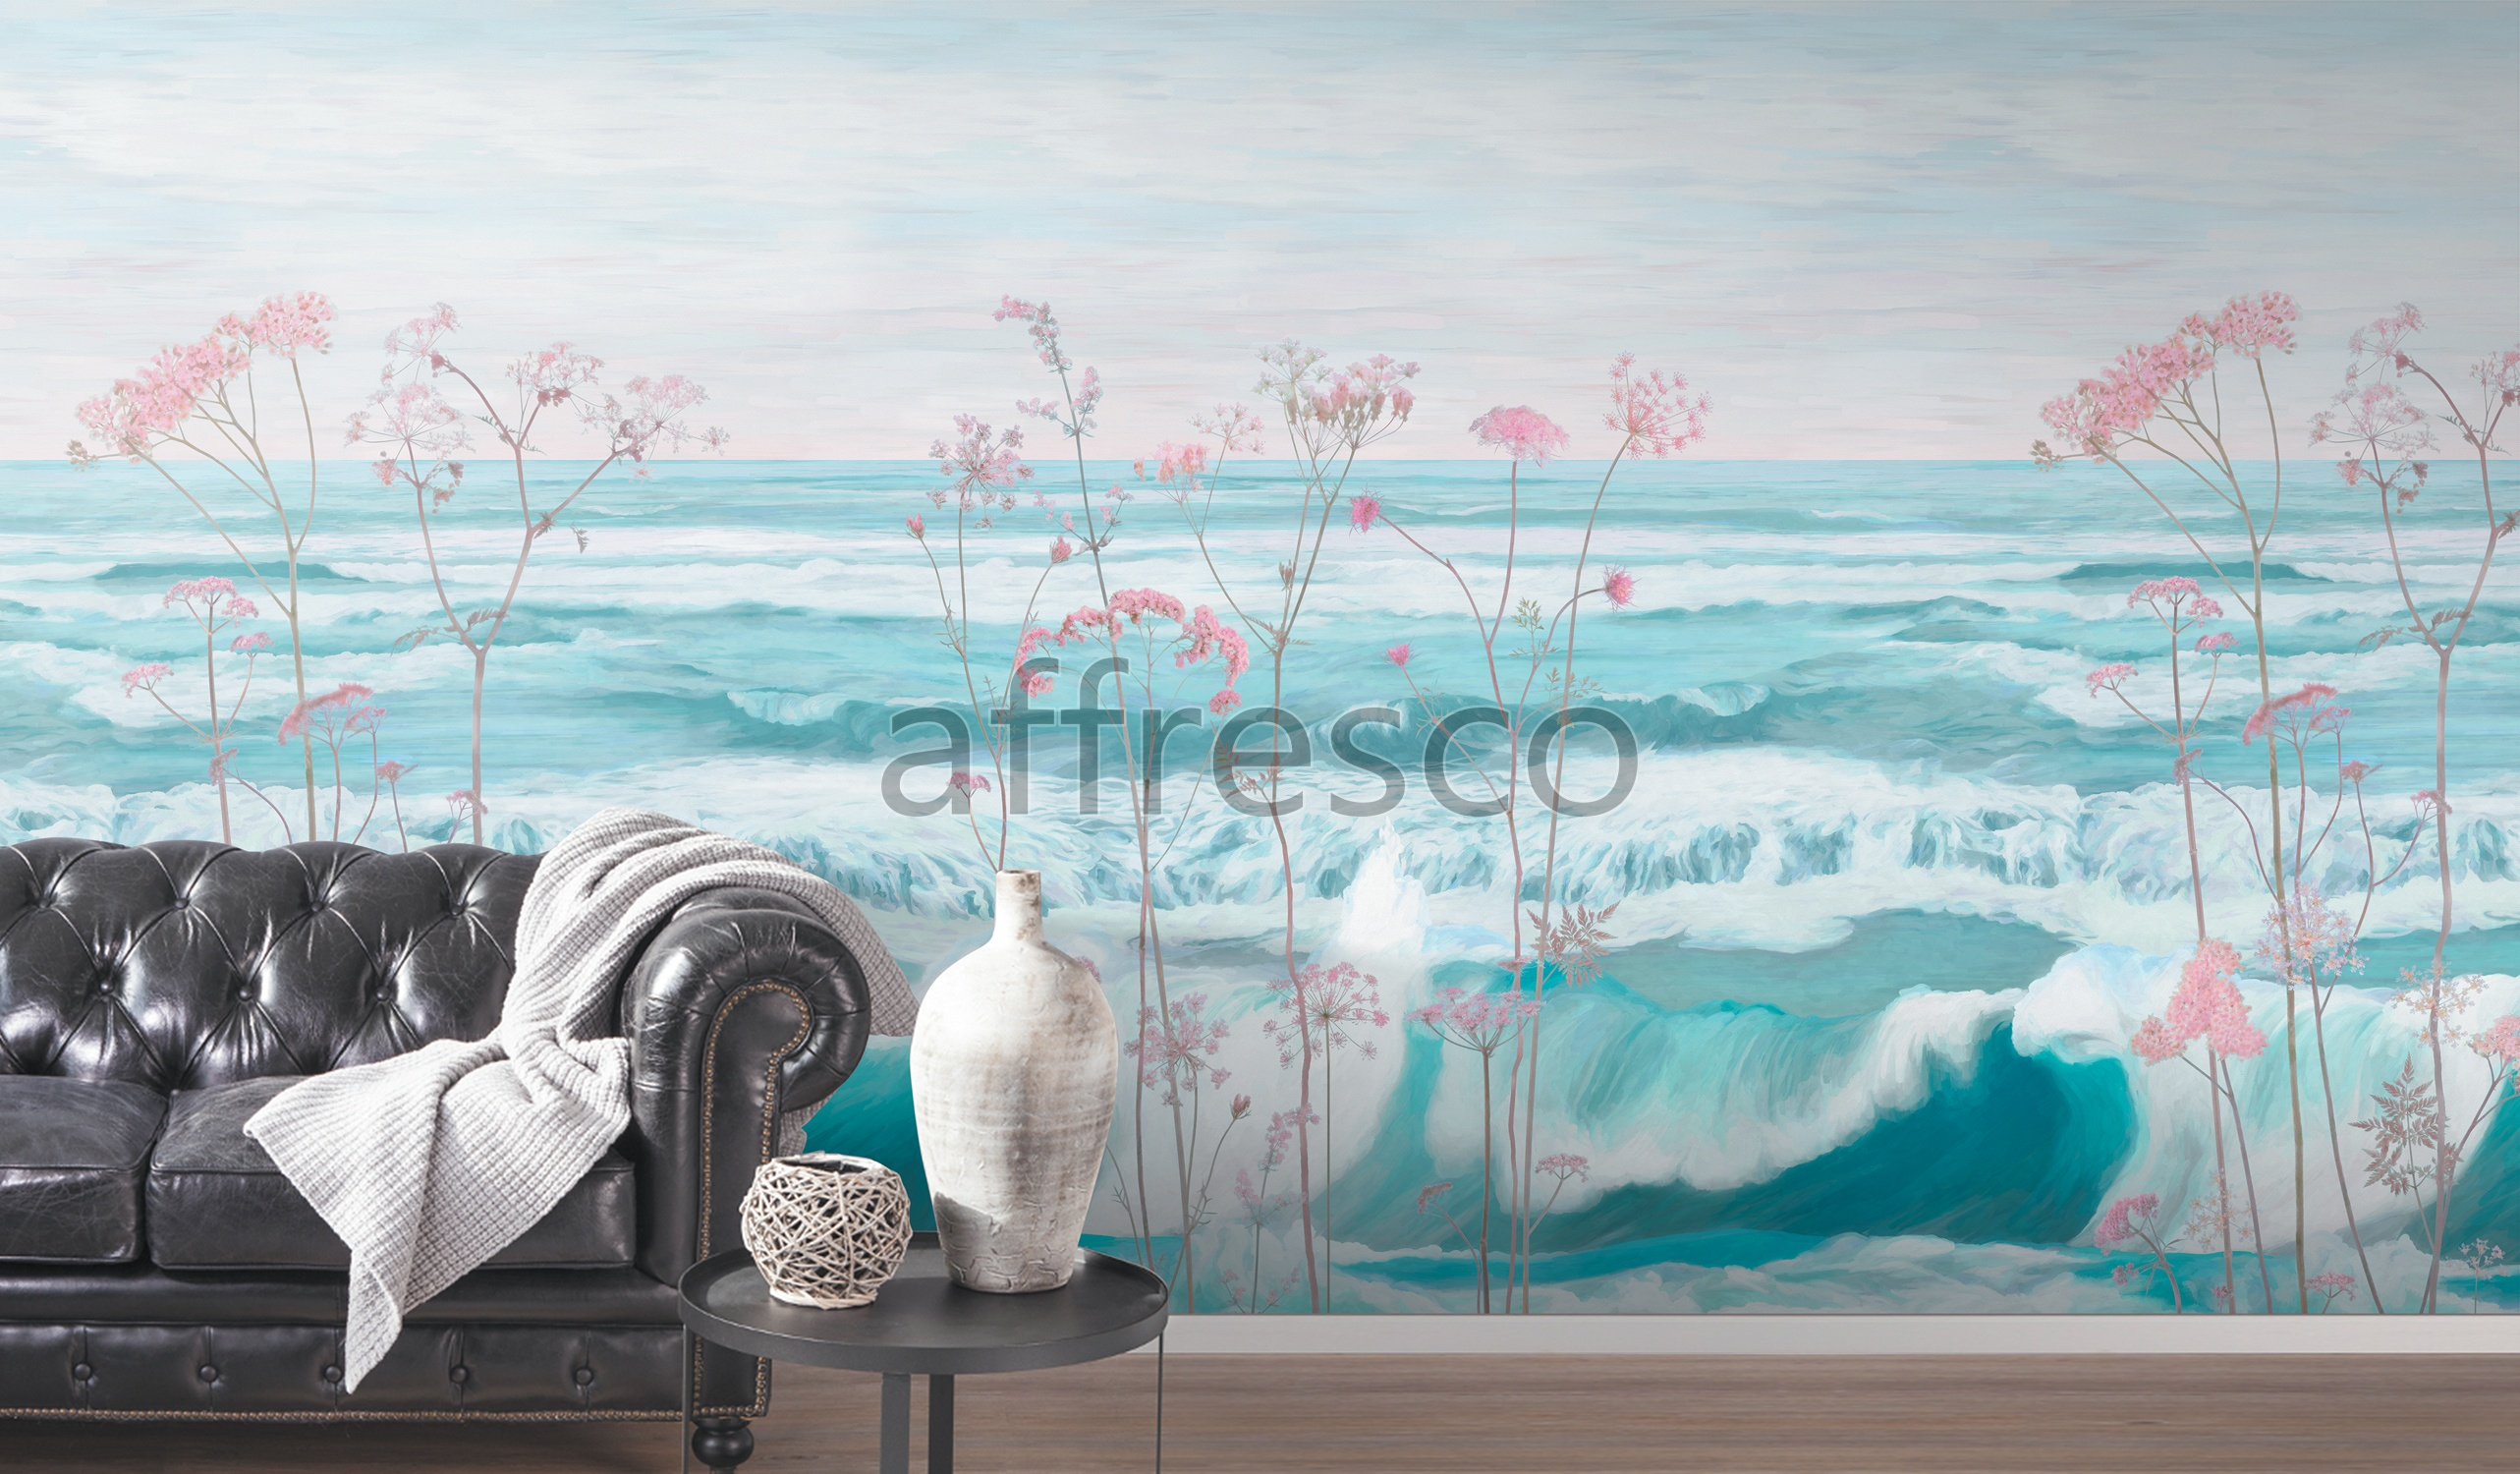 Handmade wallpaper, Handmade wallpaper | Ocean Tide